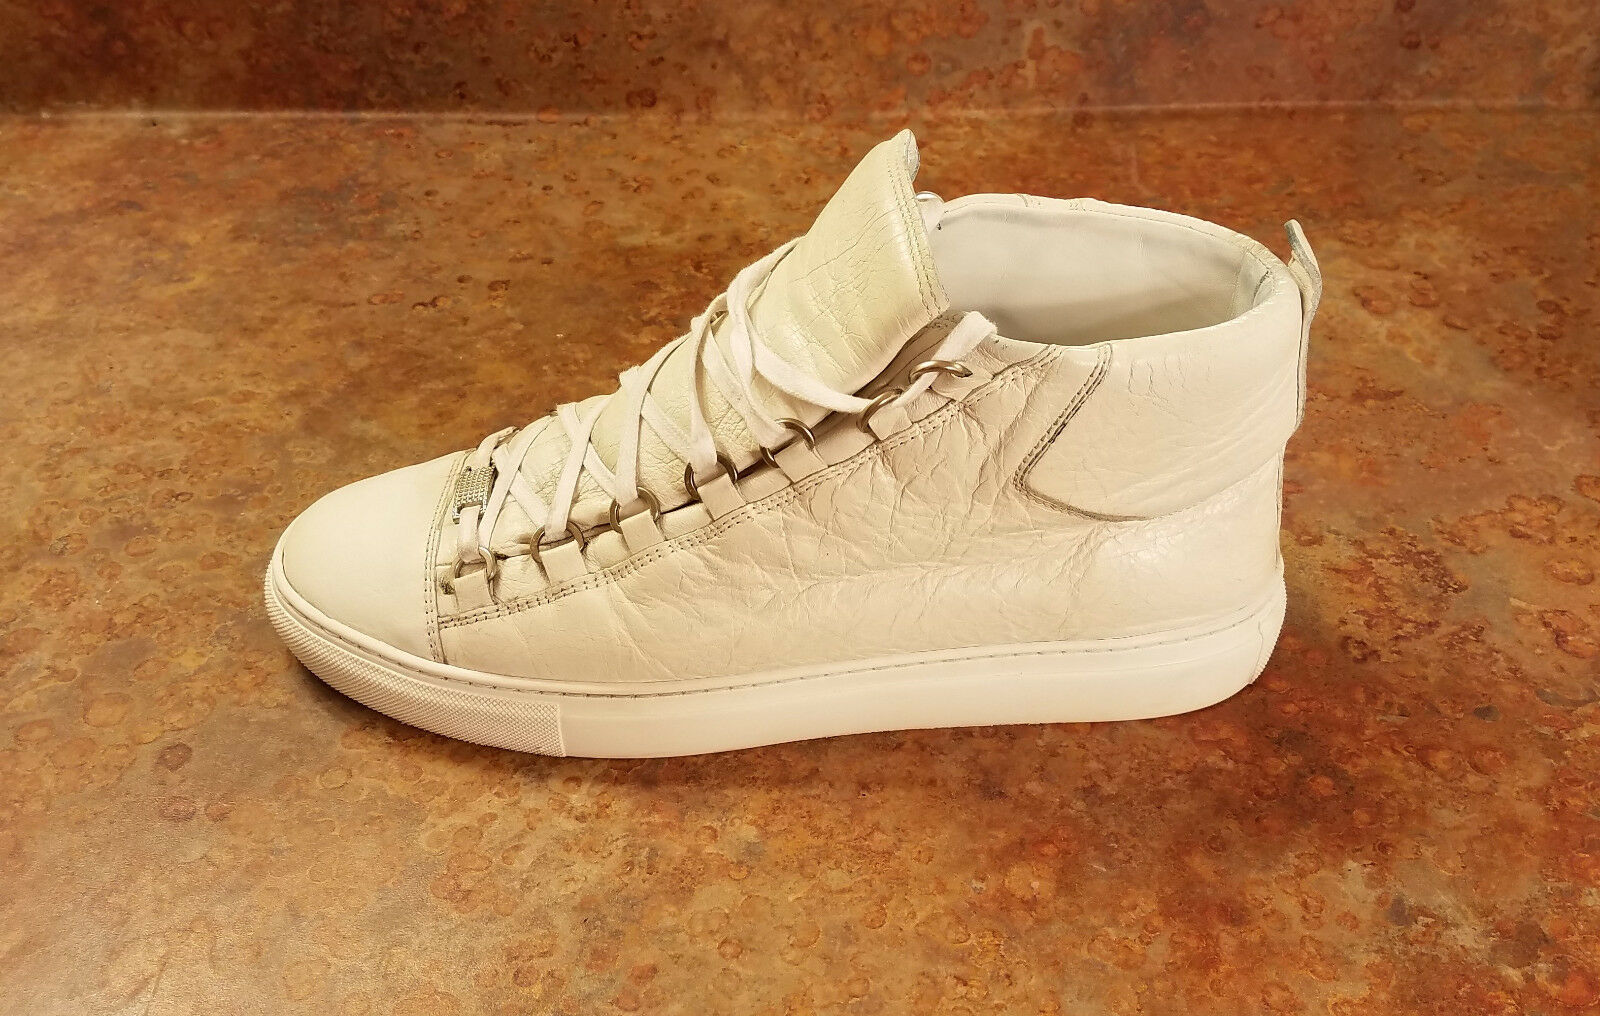 Balenciaga 'Arena' Creased High Top White Sneakers Mens 7 US 40 Eur. MSRP 645